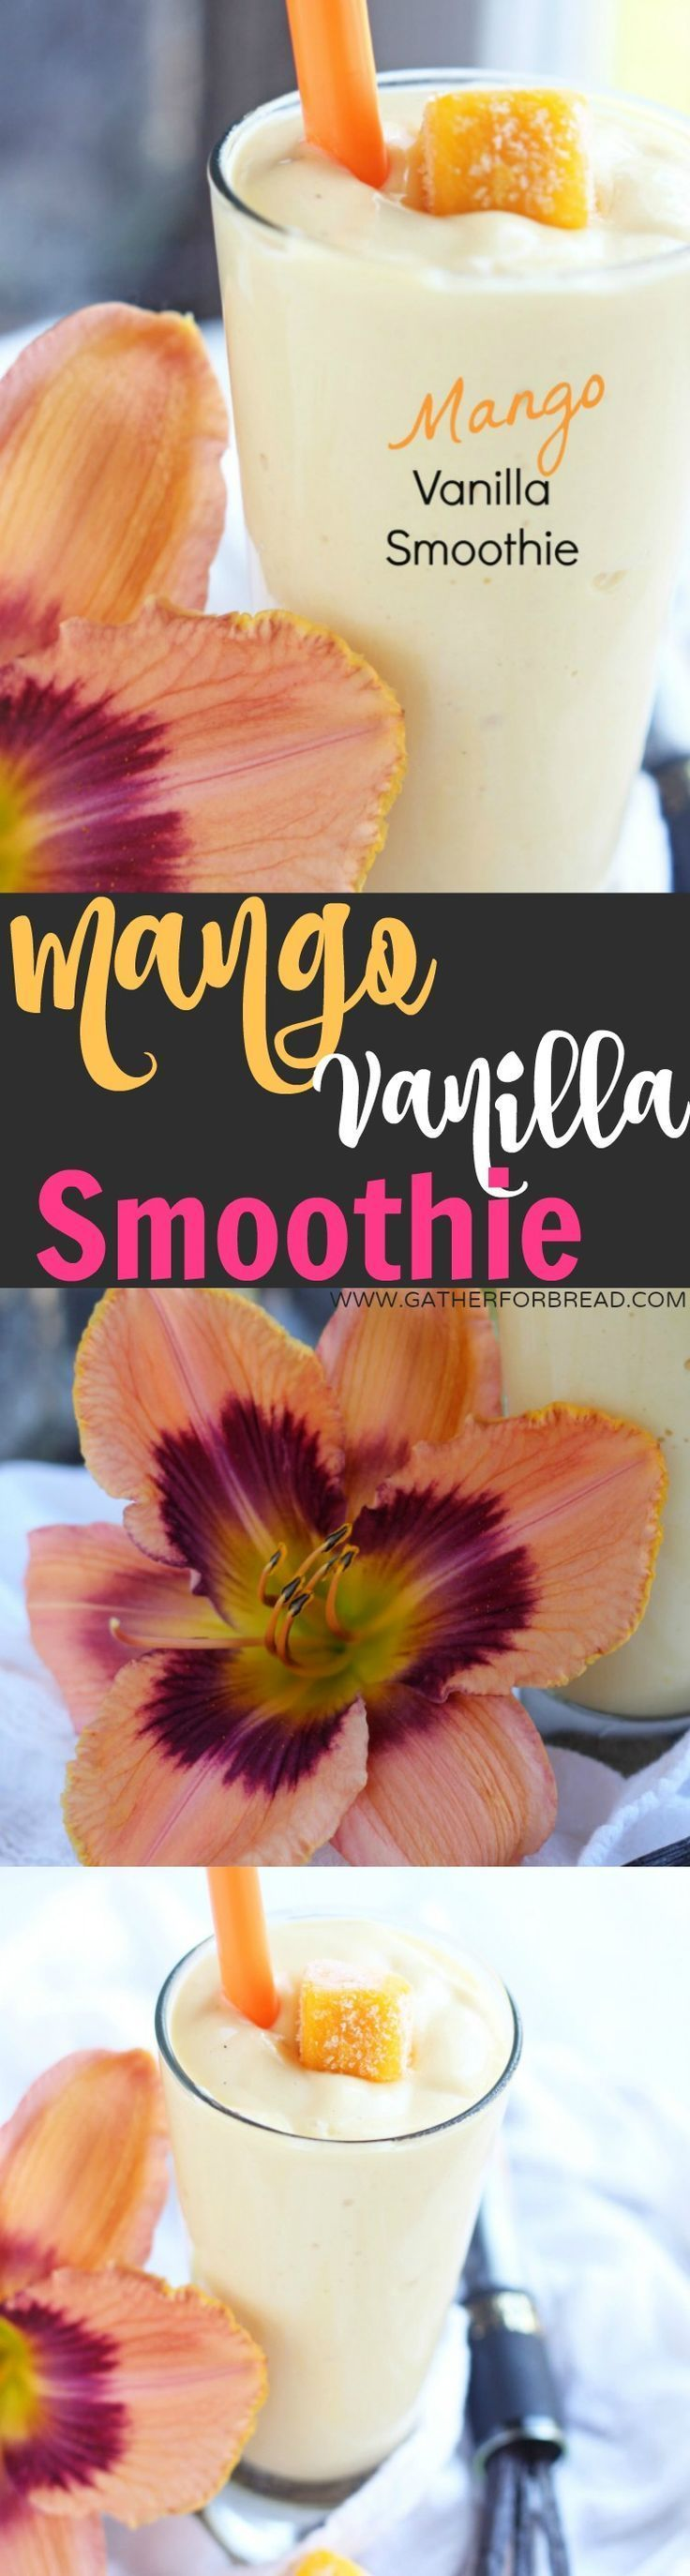 Mango Vanilla Smoothie - Healthy mango smoothie made with Greek yogurt, vanilla and frozen mango. Only 4 ingredients! Delicious protein for breakfast or snack.